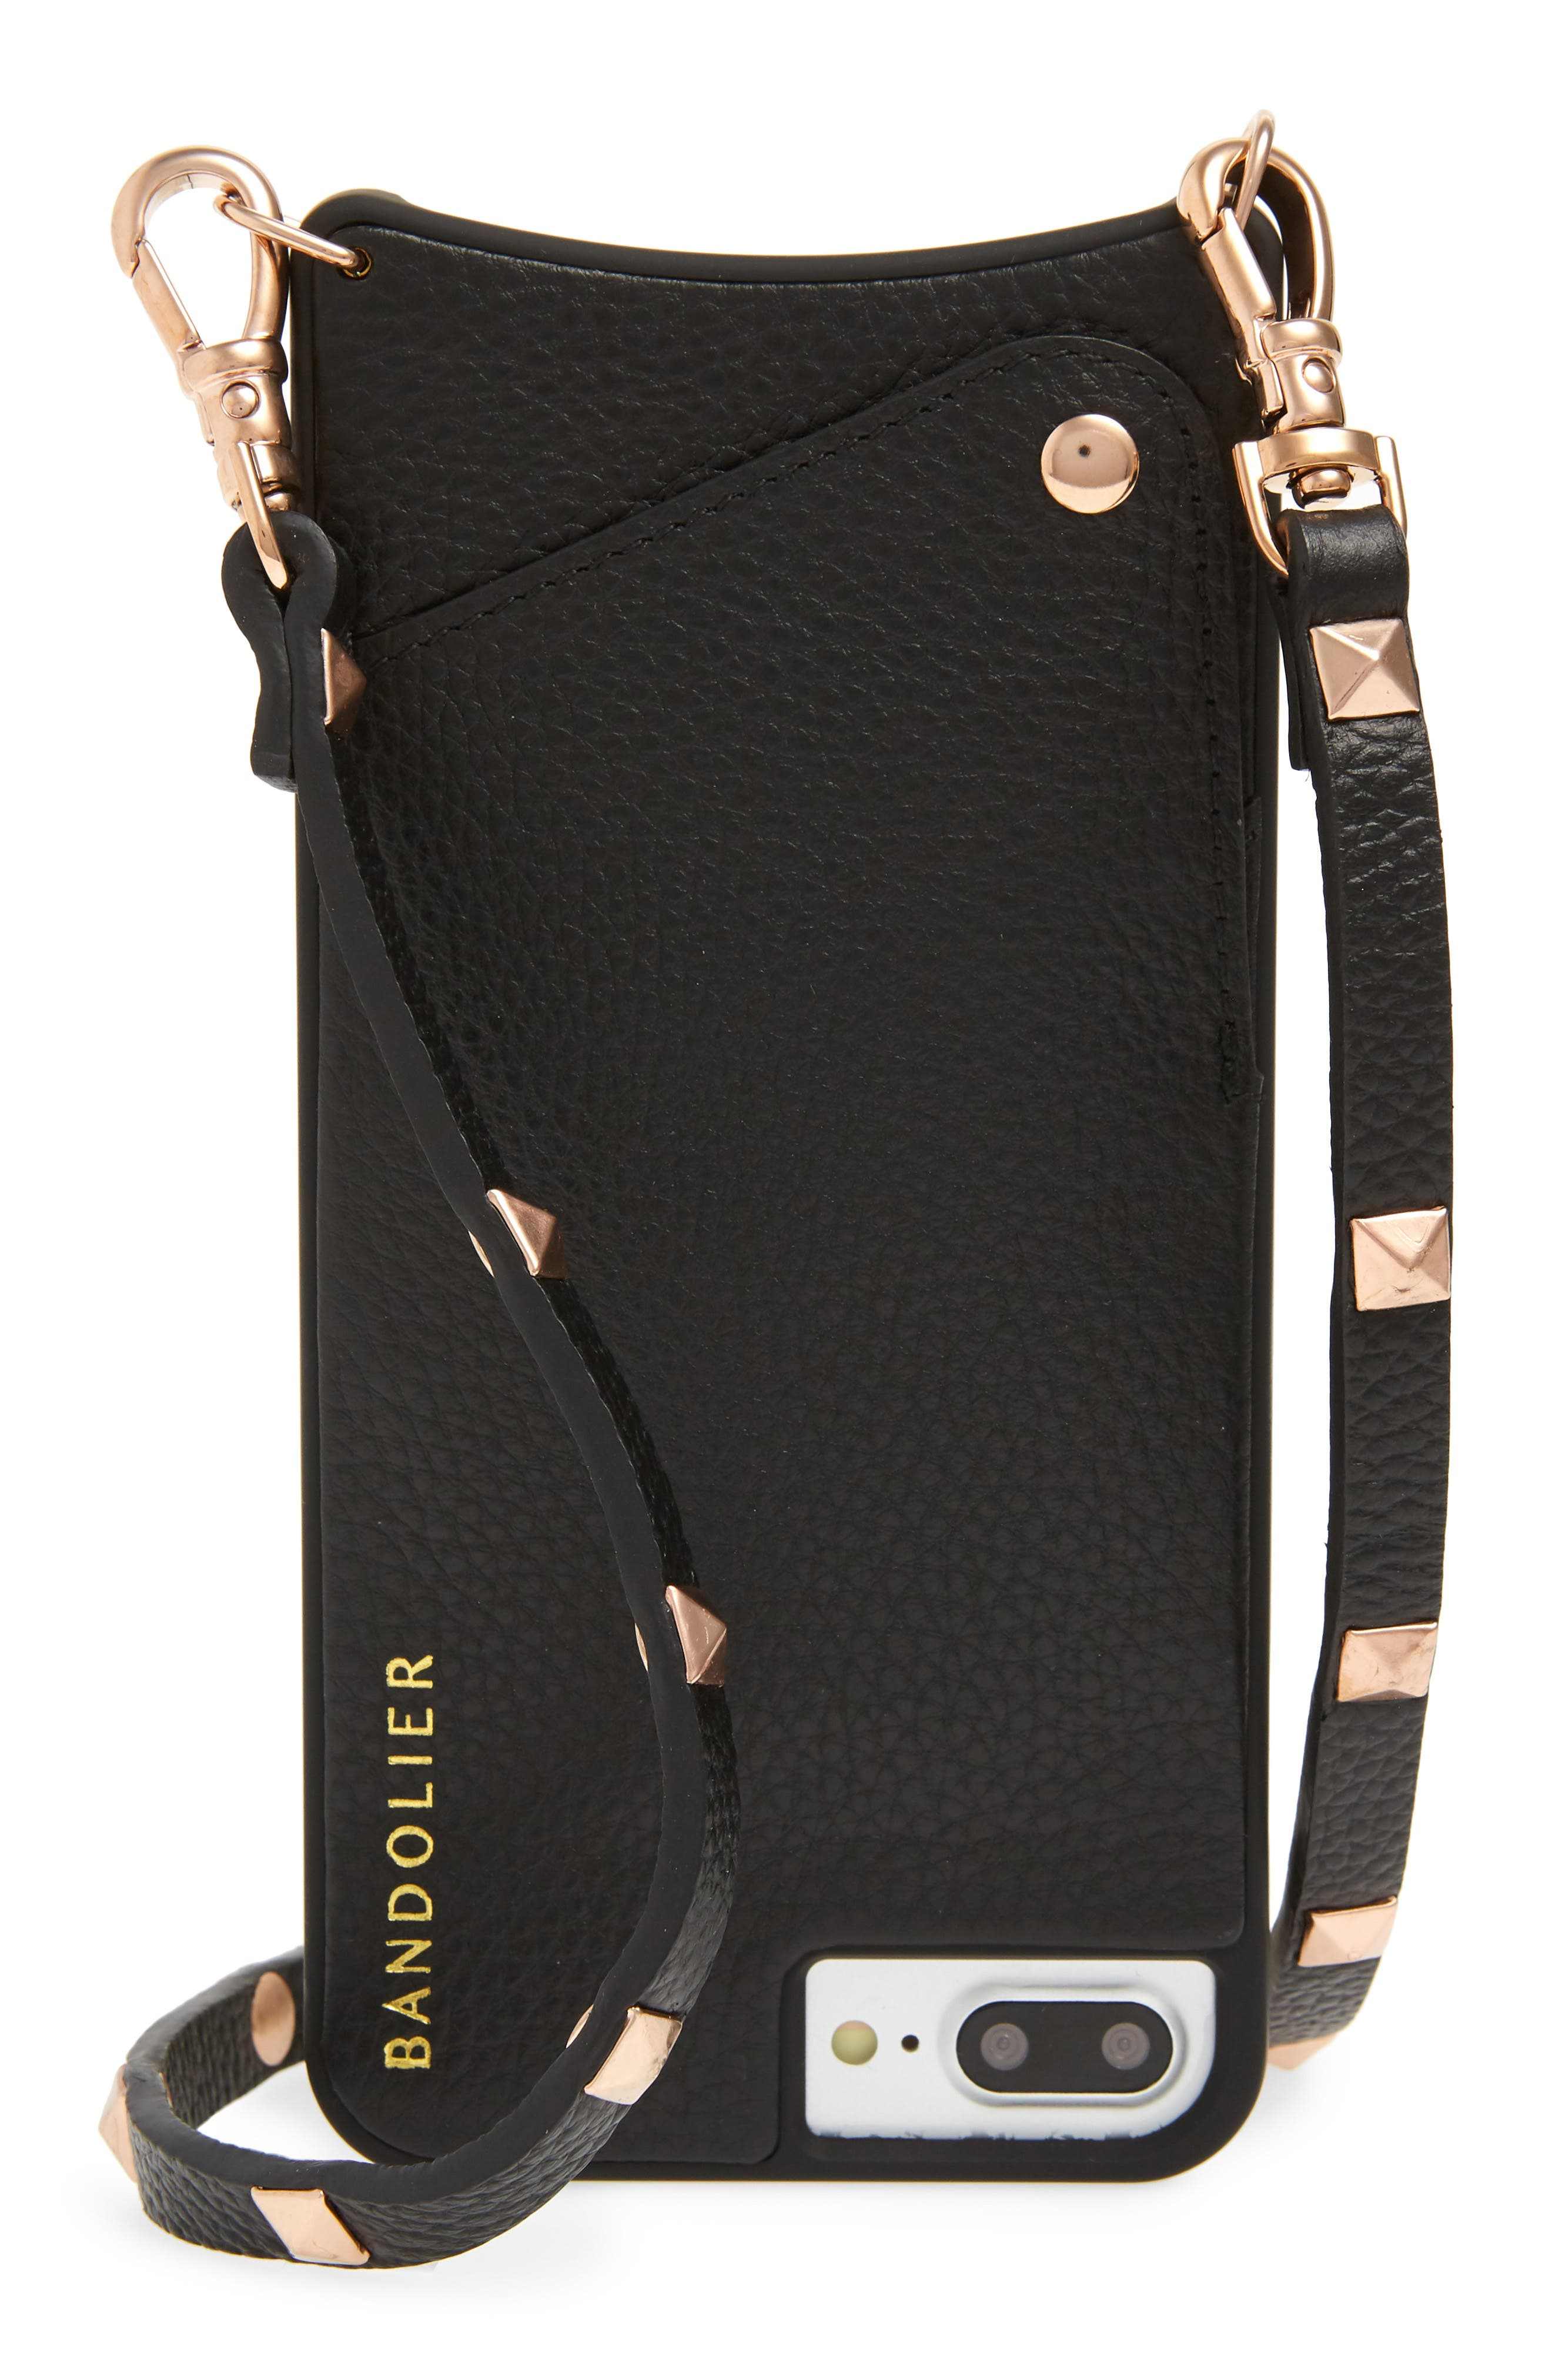 Bandolier Sarah Rose Gold & Leather iPhone 6/7/8 & 6/7/8 Plus Crossbody Case